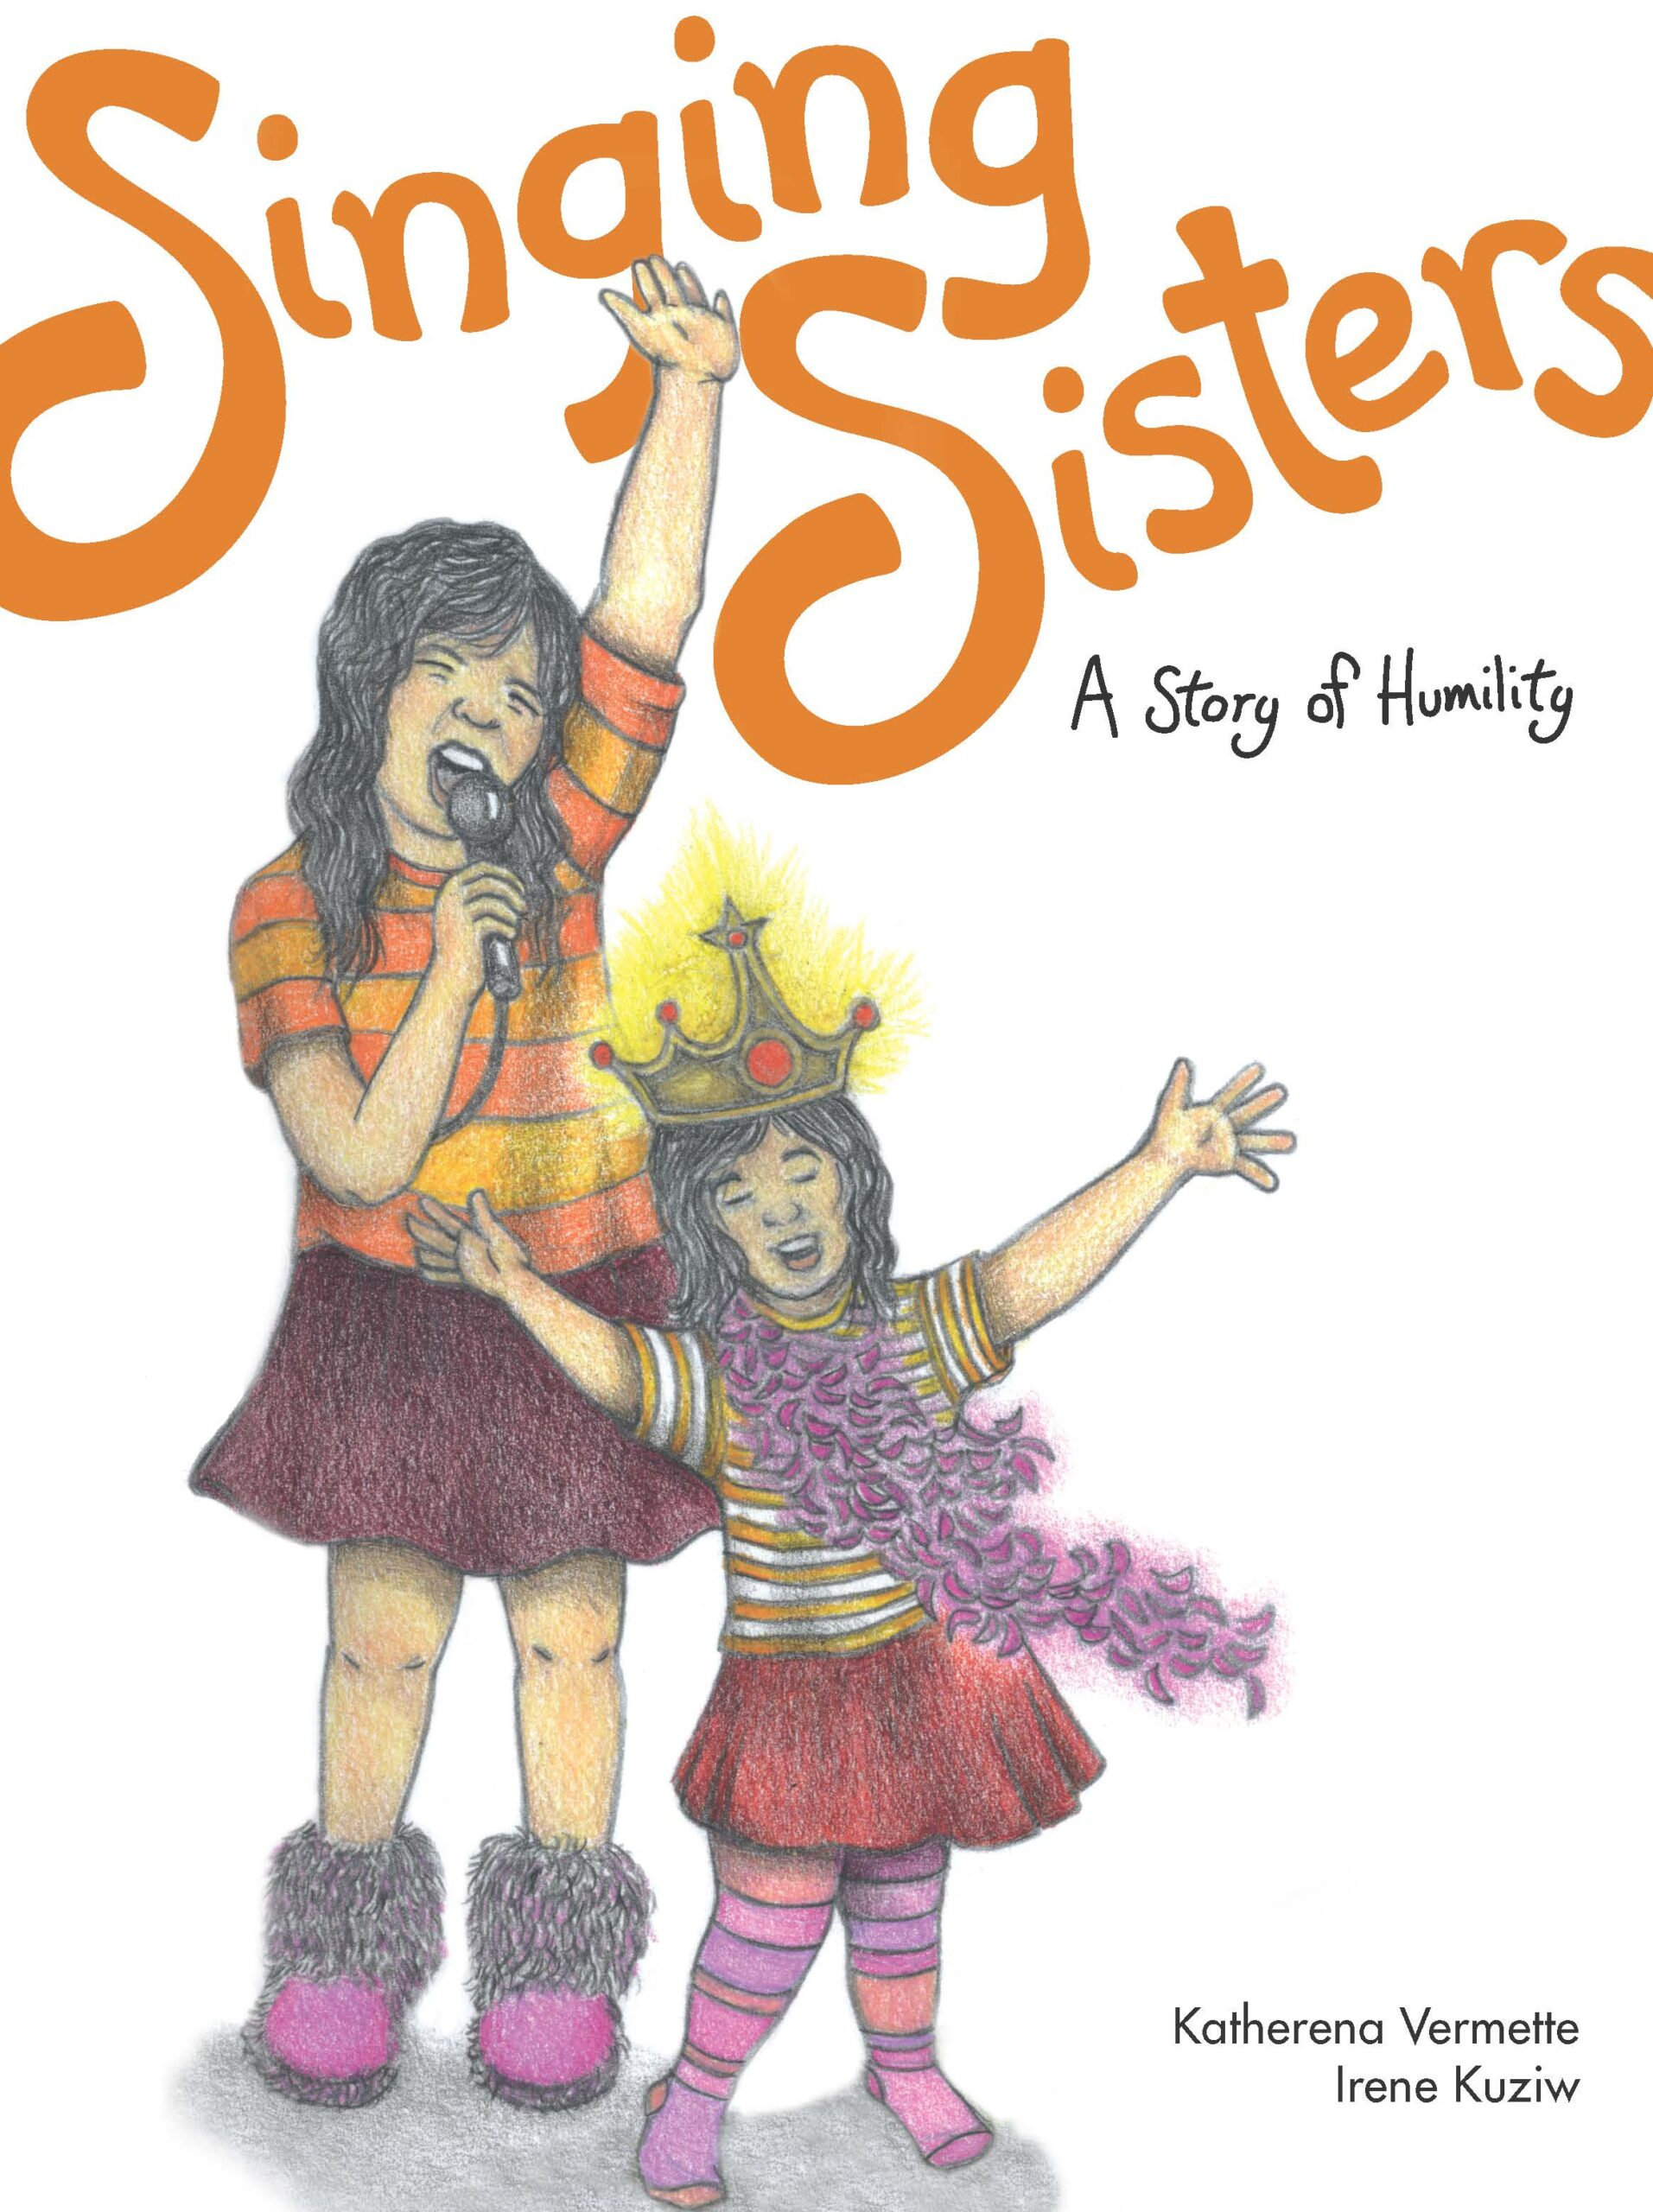 The book cover for Singing Sisters: A Story of Humility by Katherena Vermette.